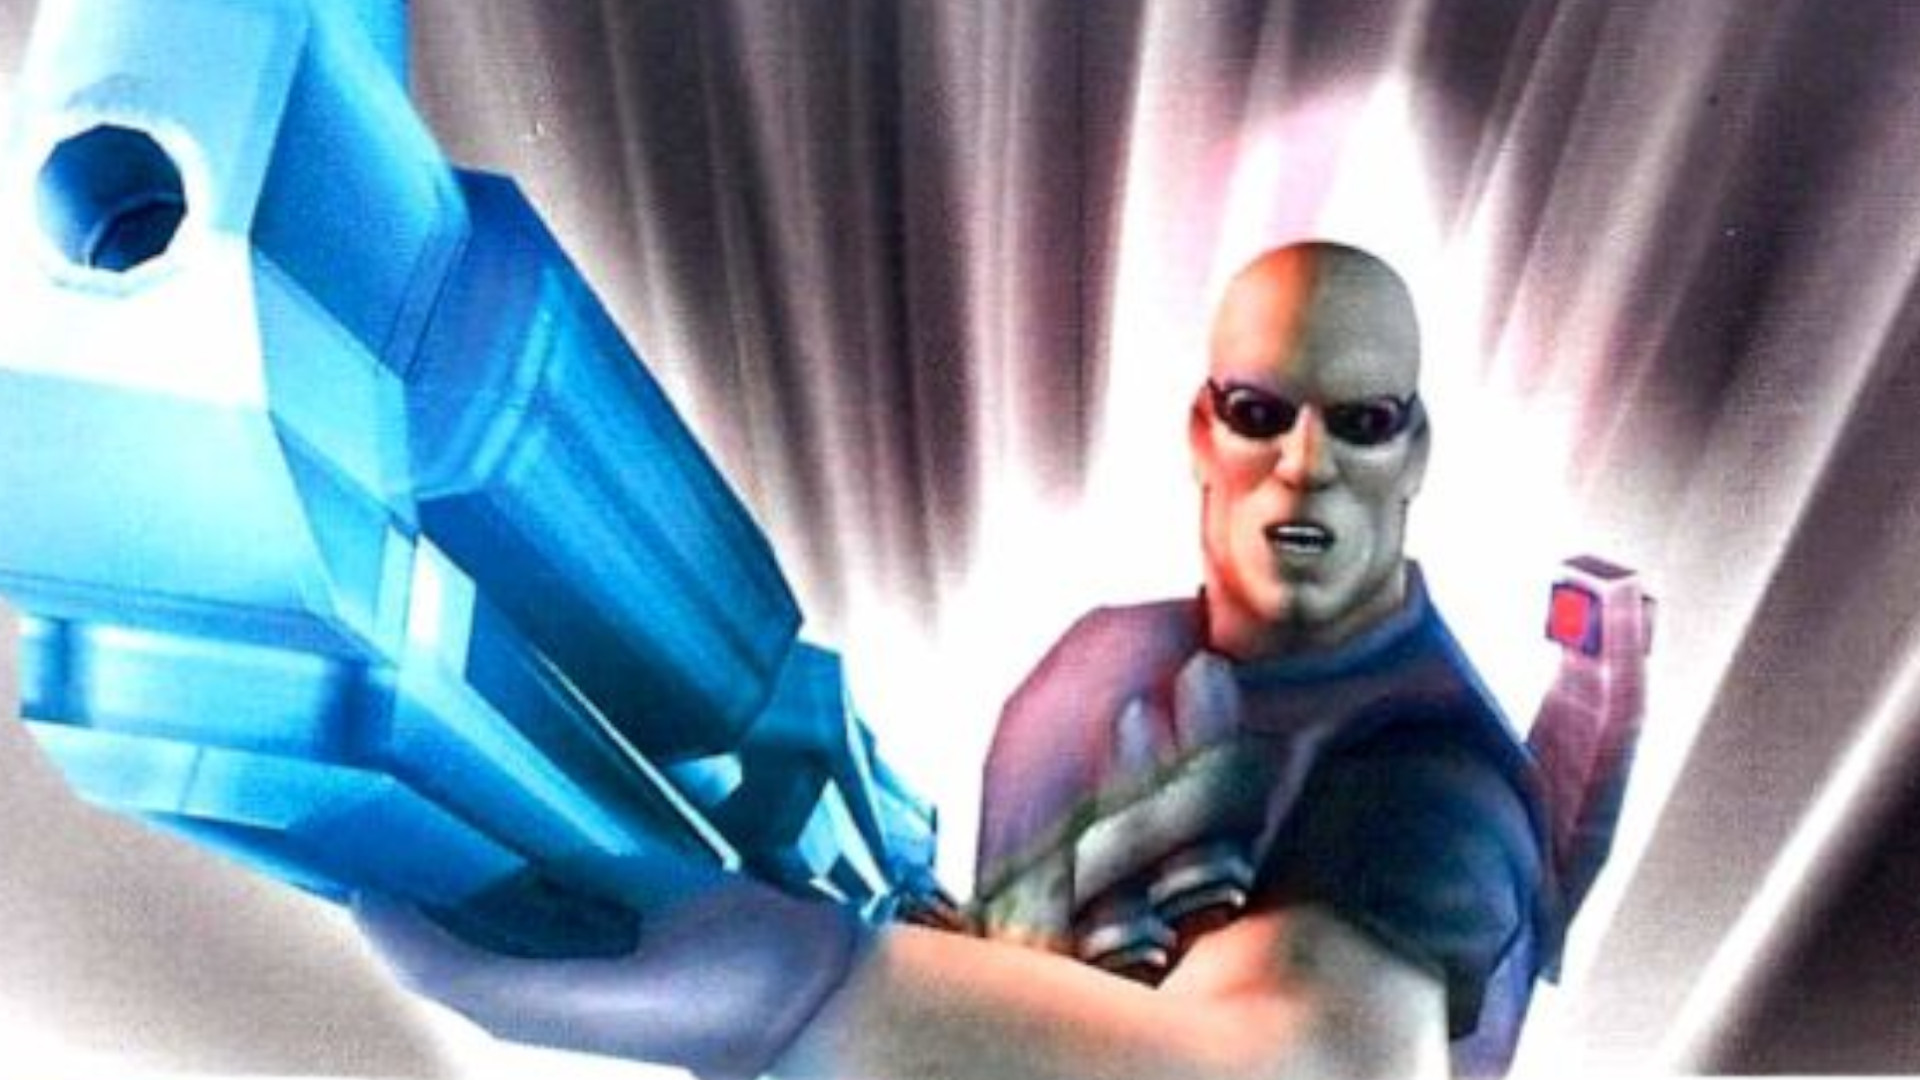 TimeSplitters 2 remastered is out now on PC (inside Homefront: The Revolution)